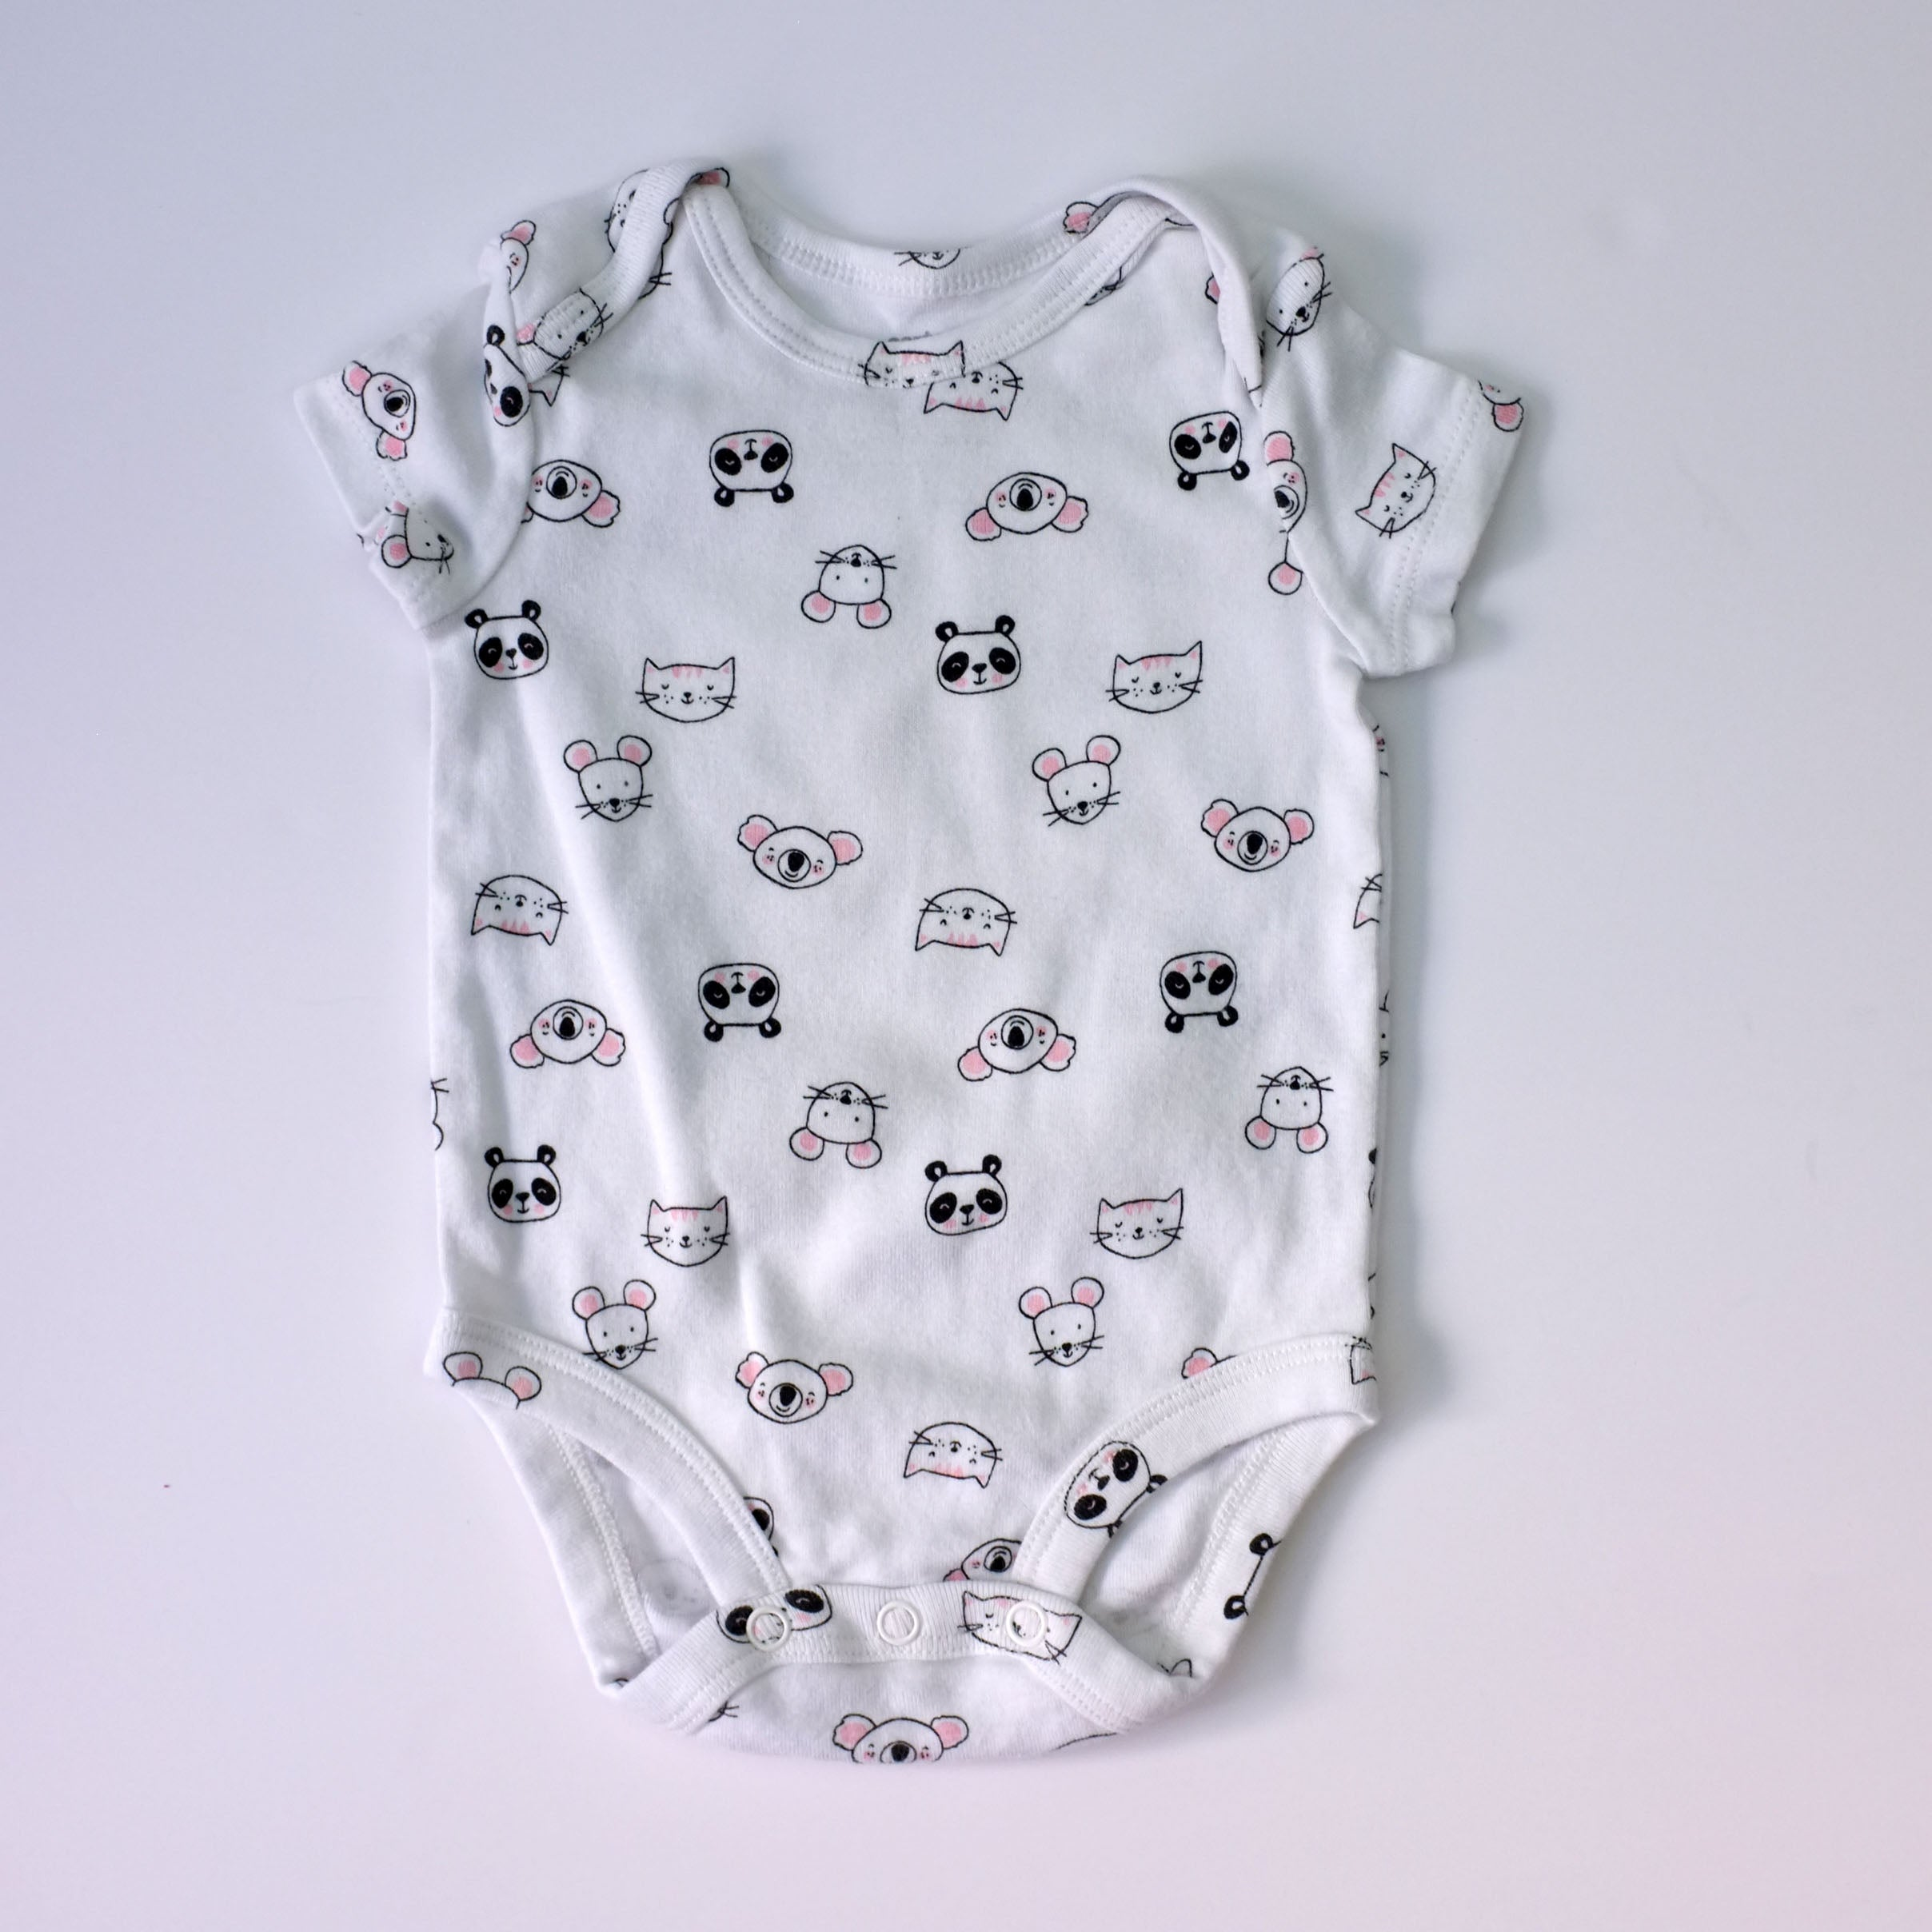 3mo Cute Animals Onesie - Wild Child